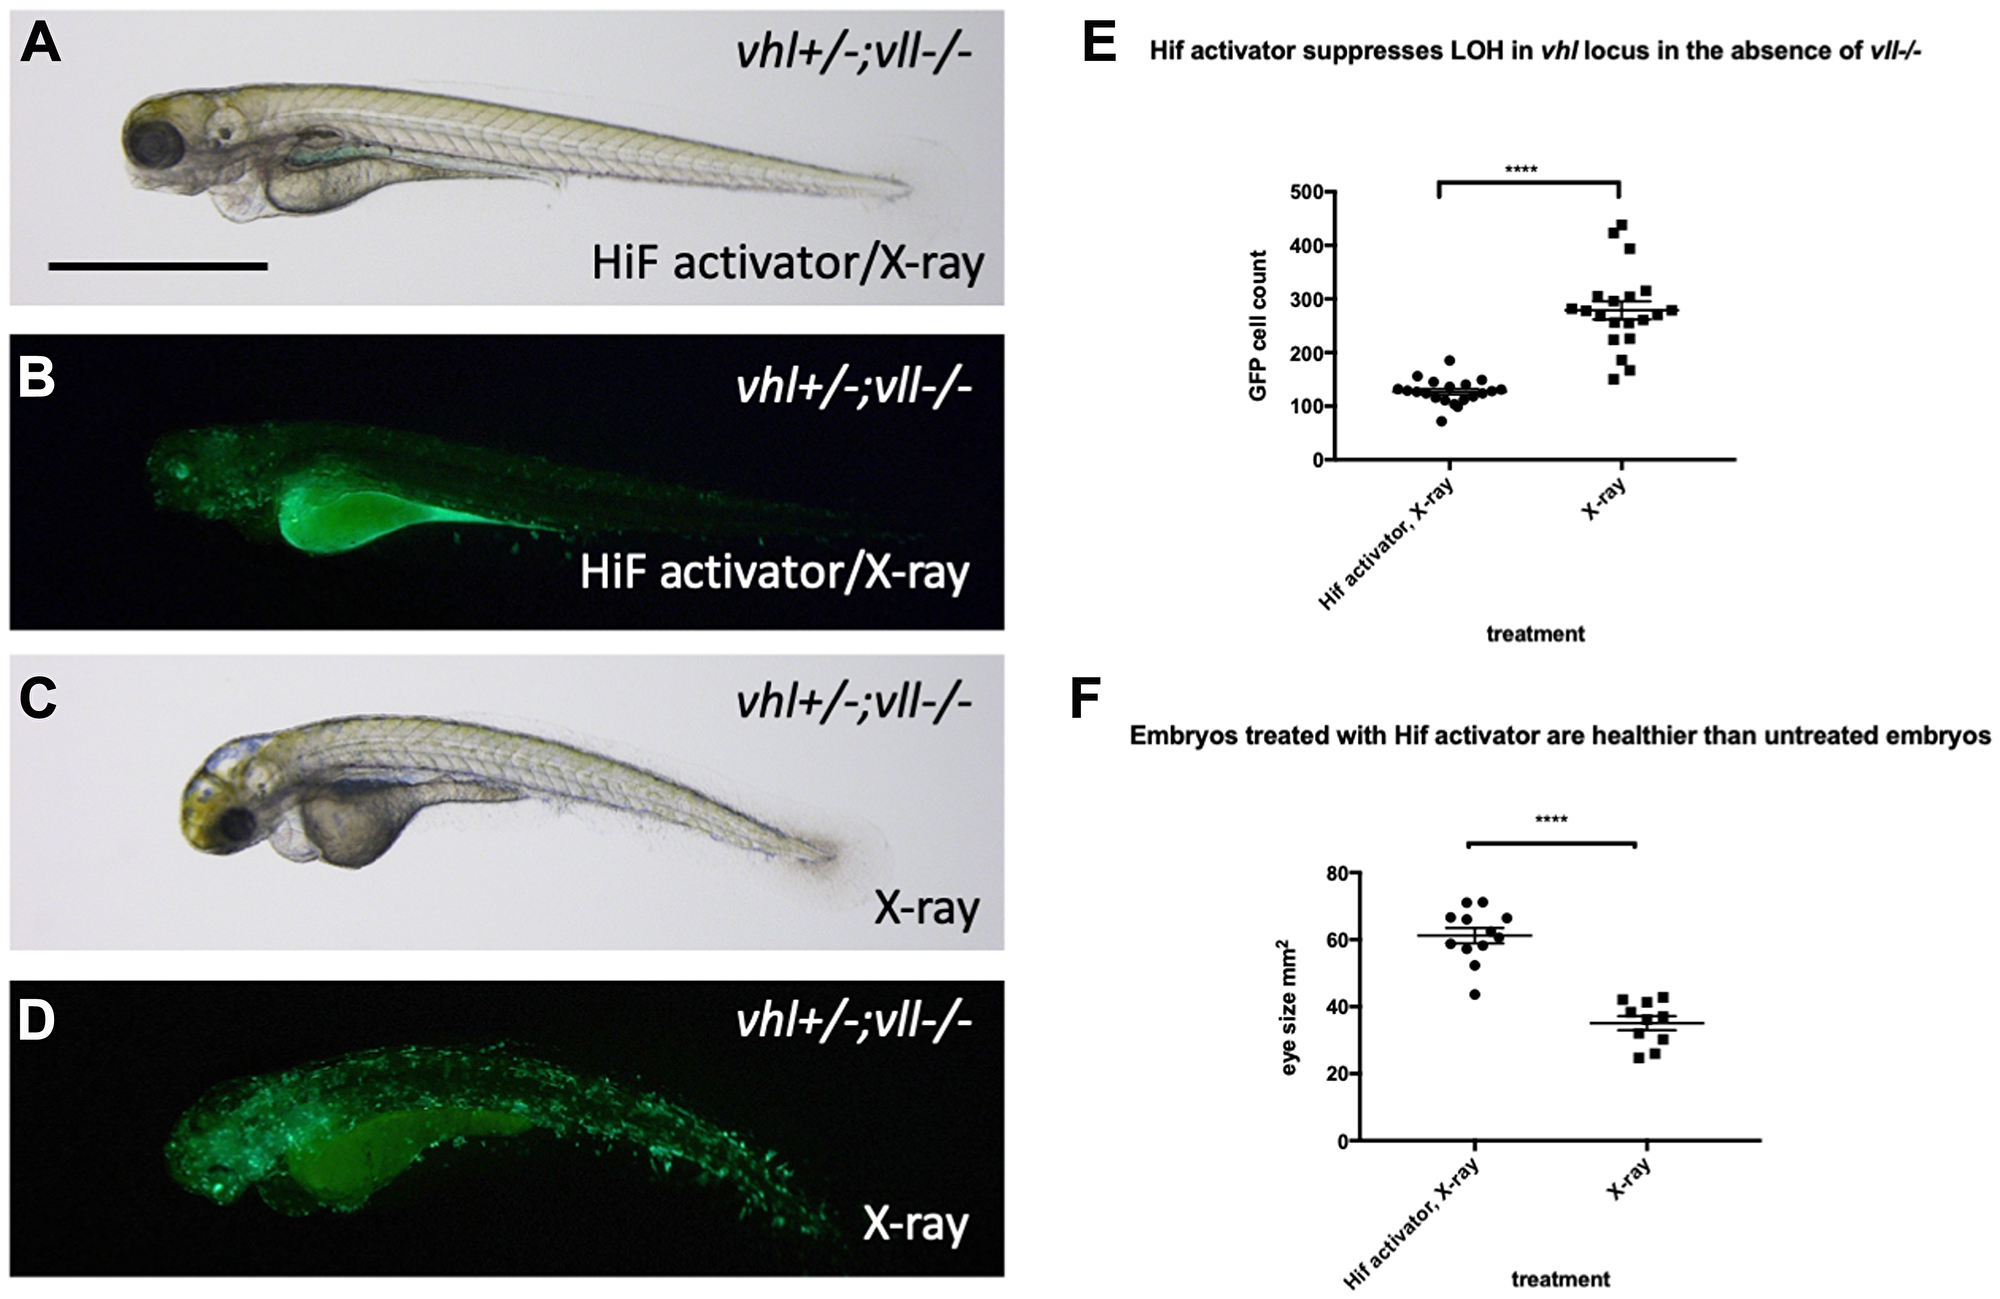 Hif activator treatment protects embryos from X-ray induced DNA damage.